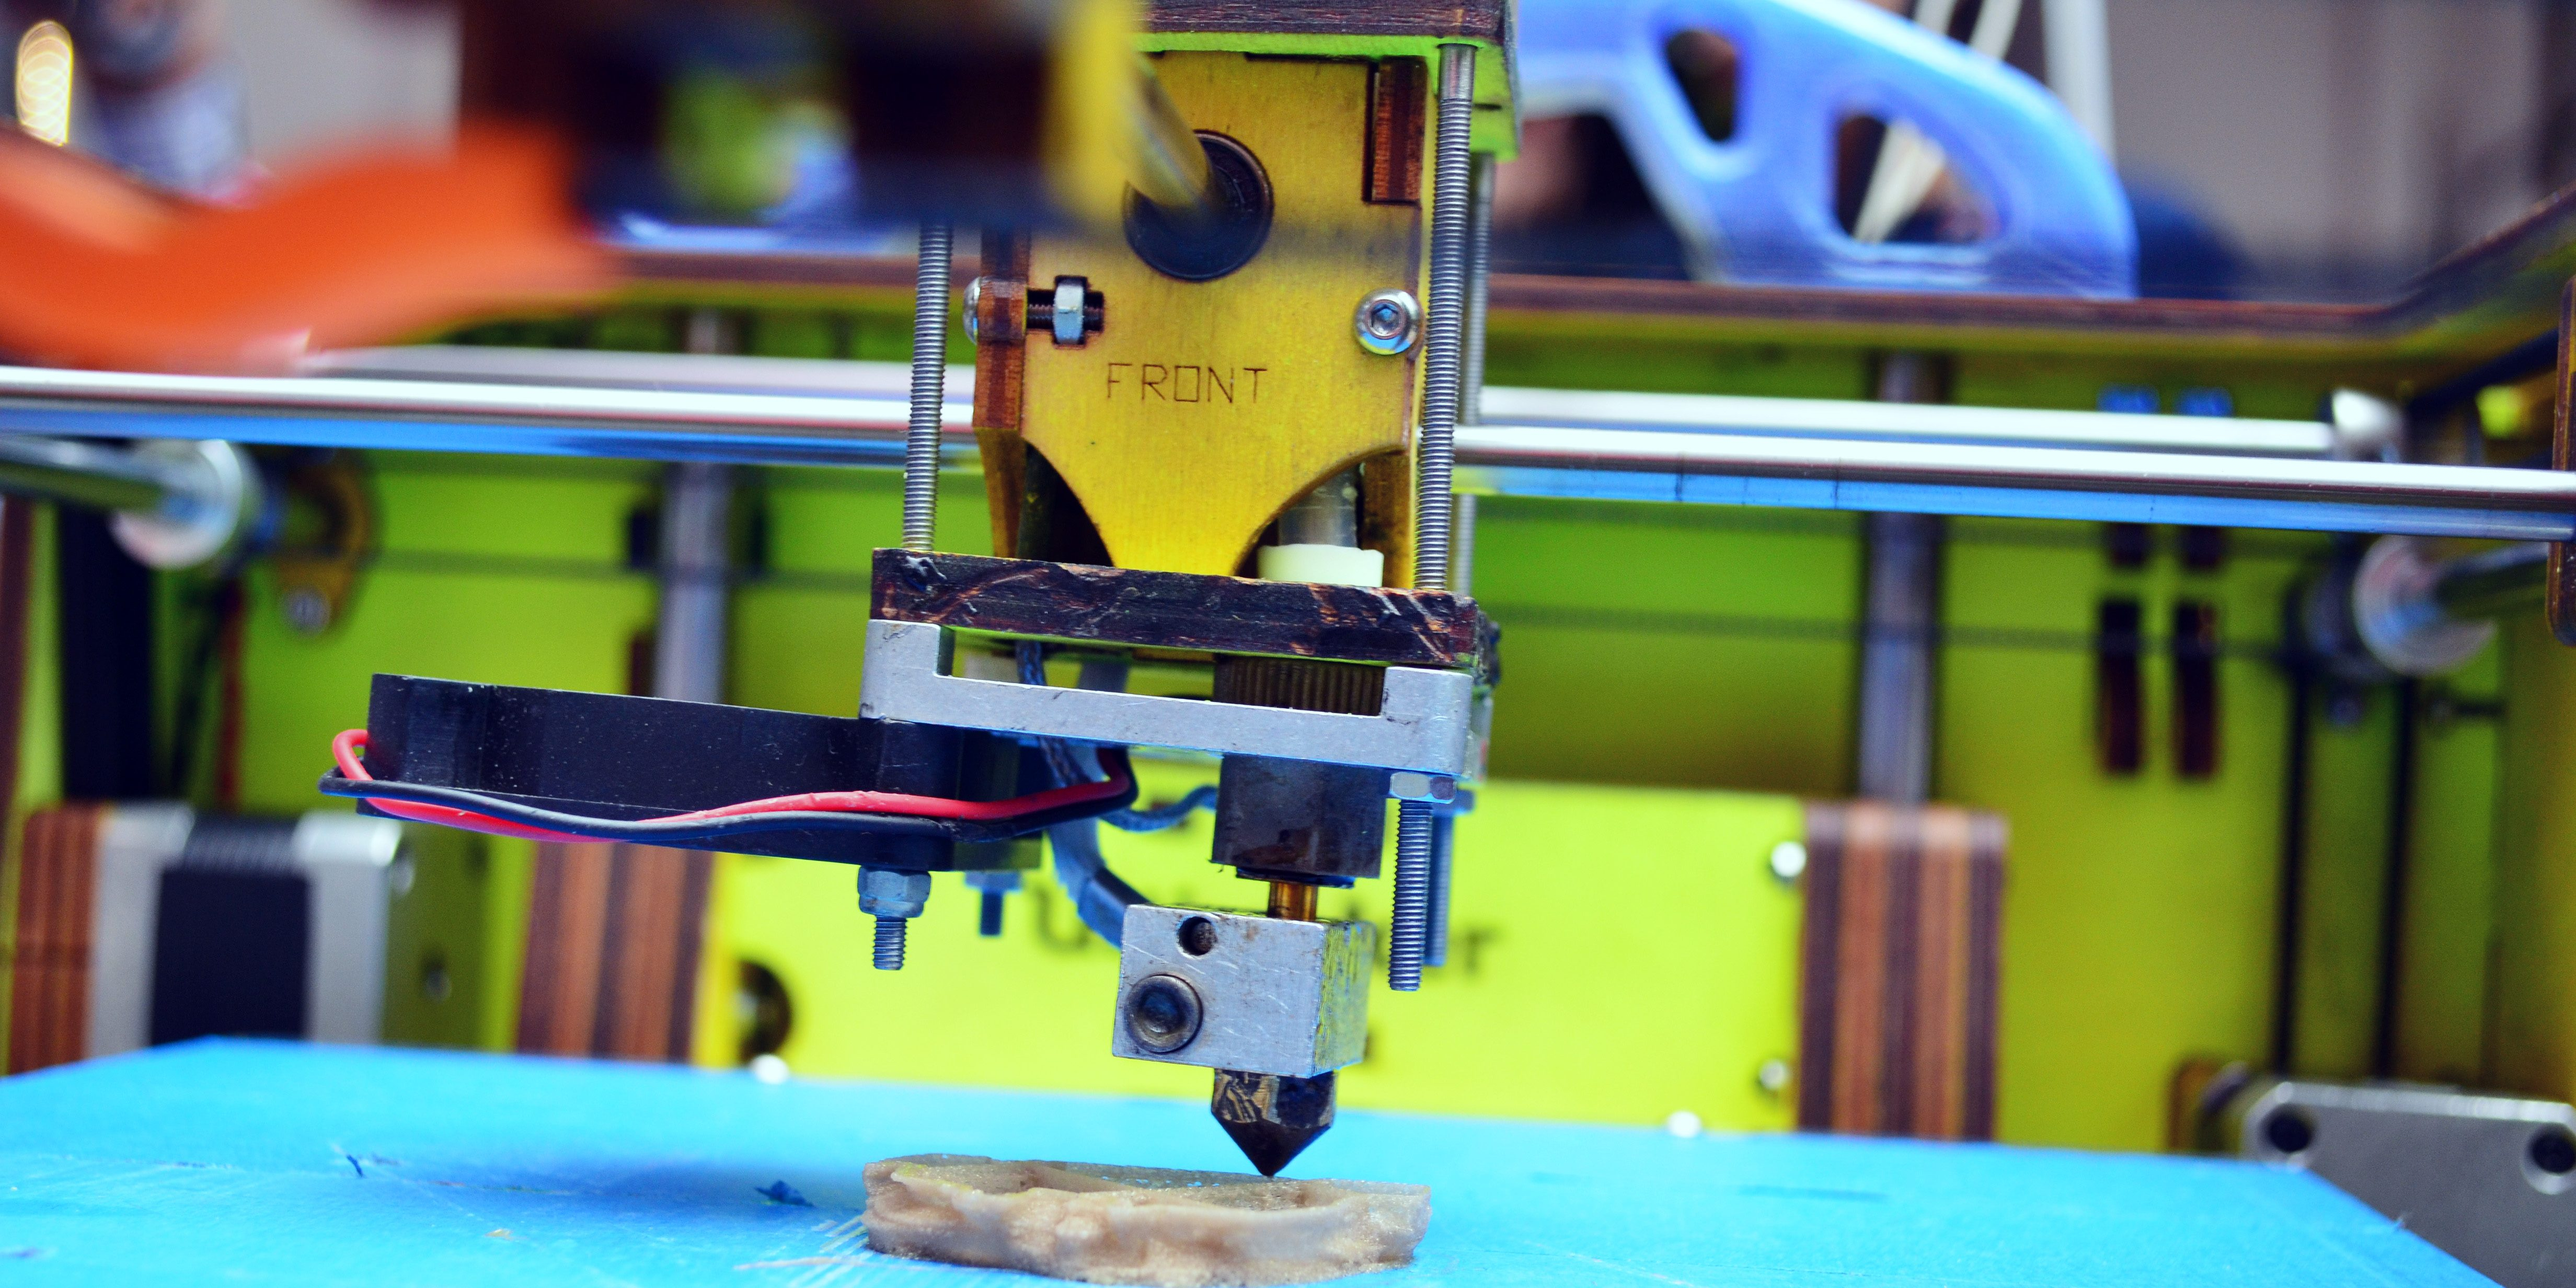 Printing with a 3D printer